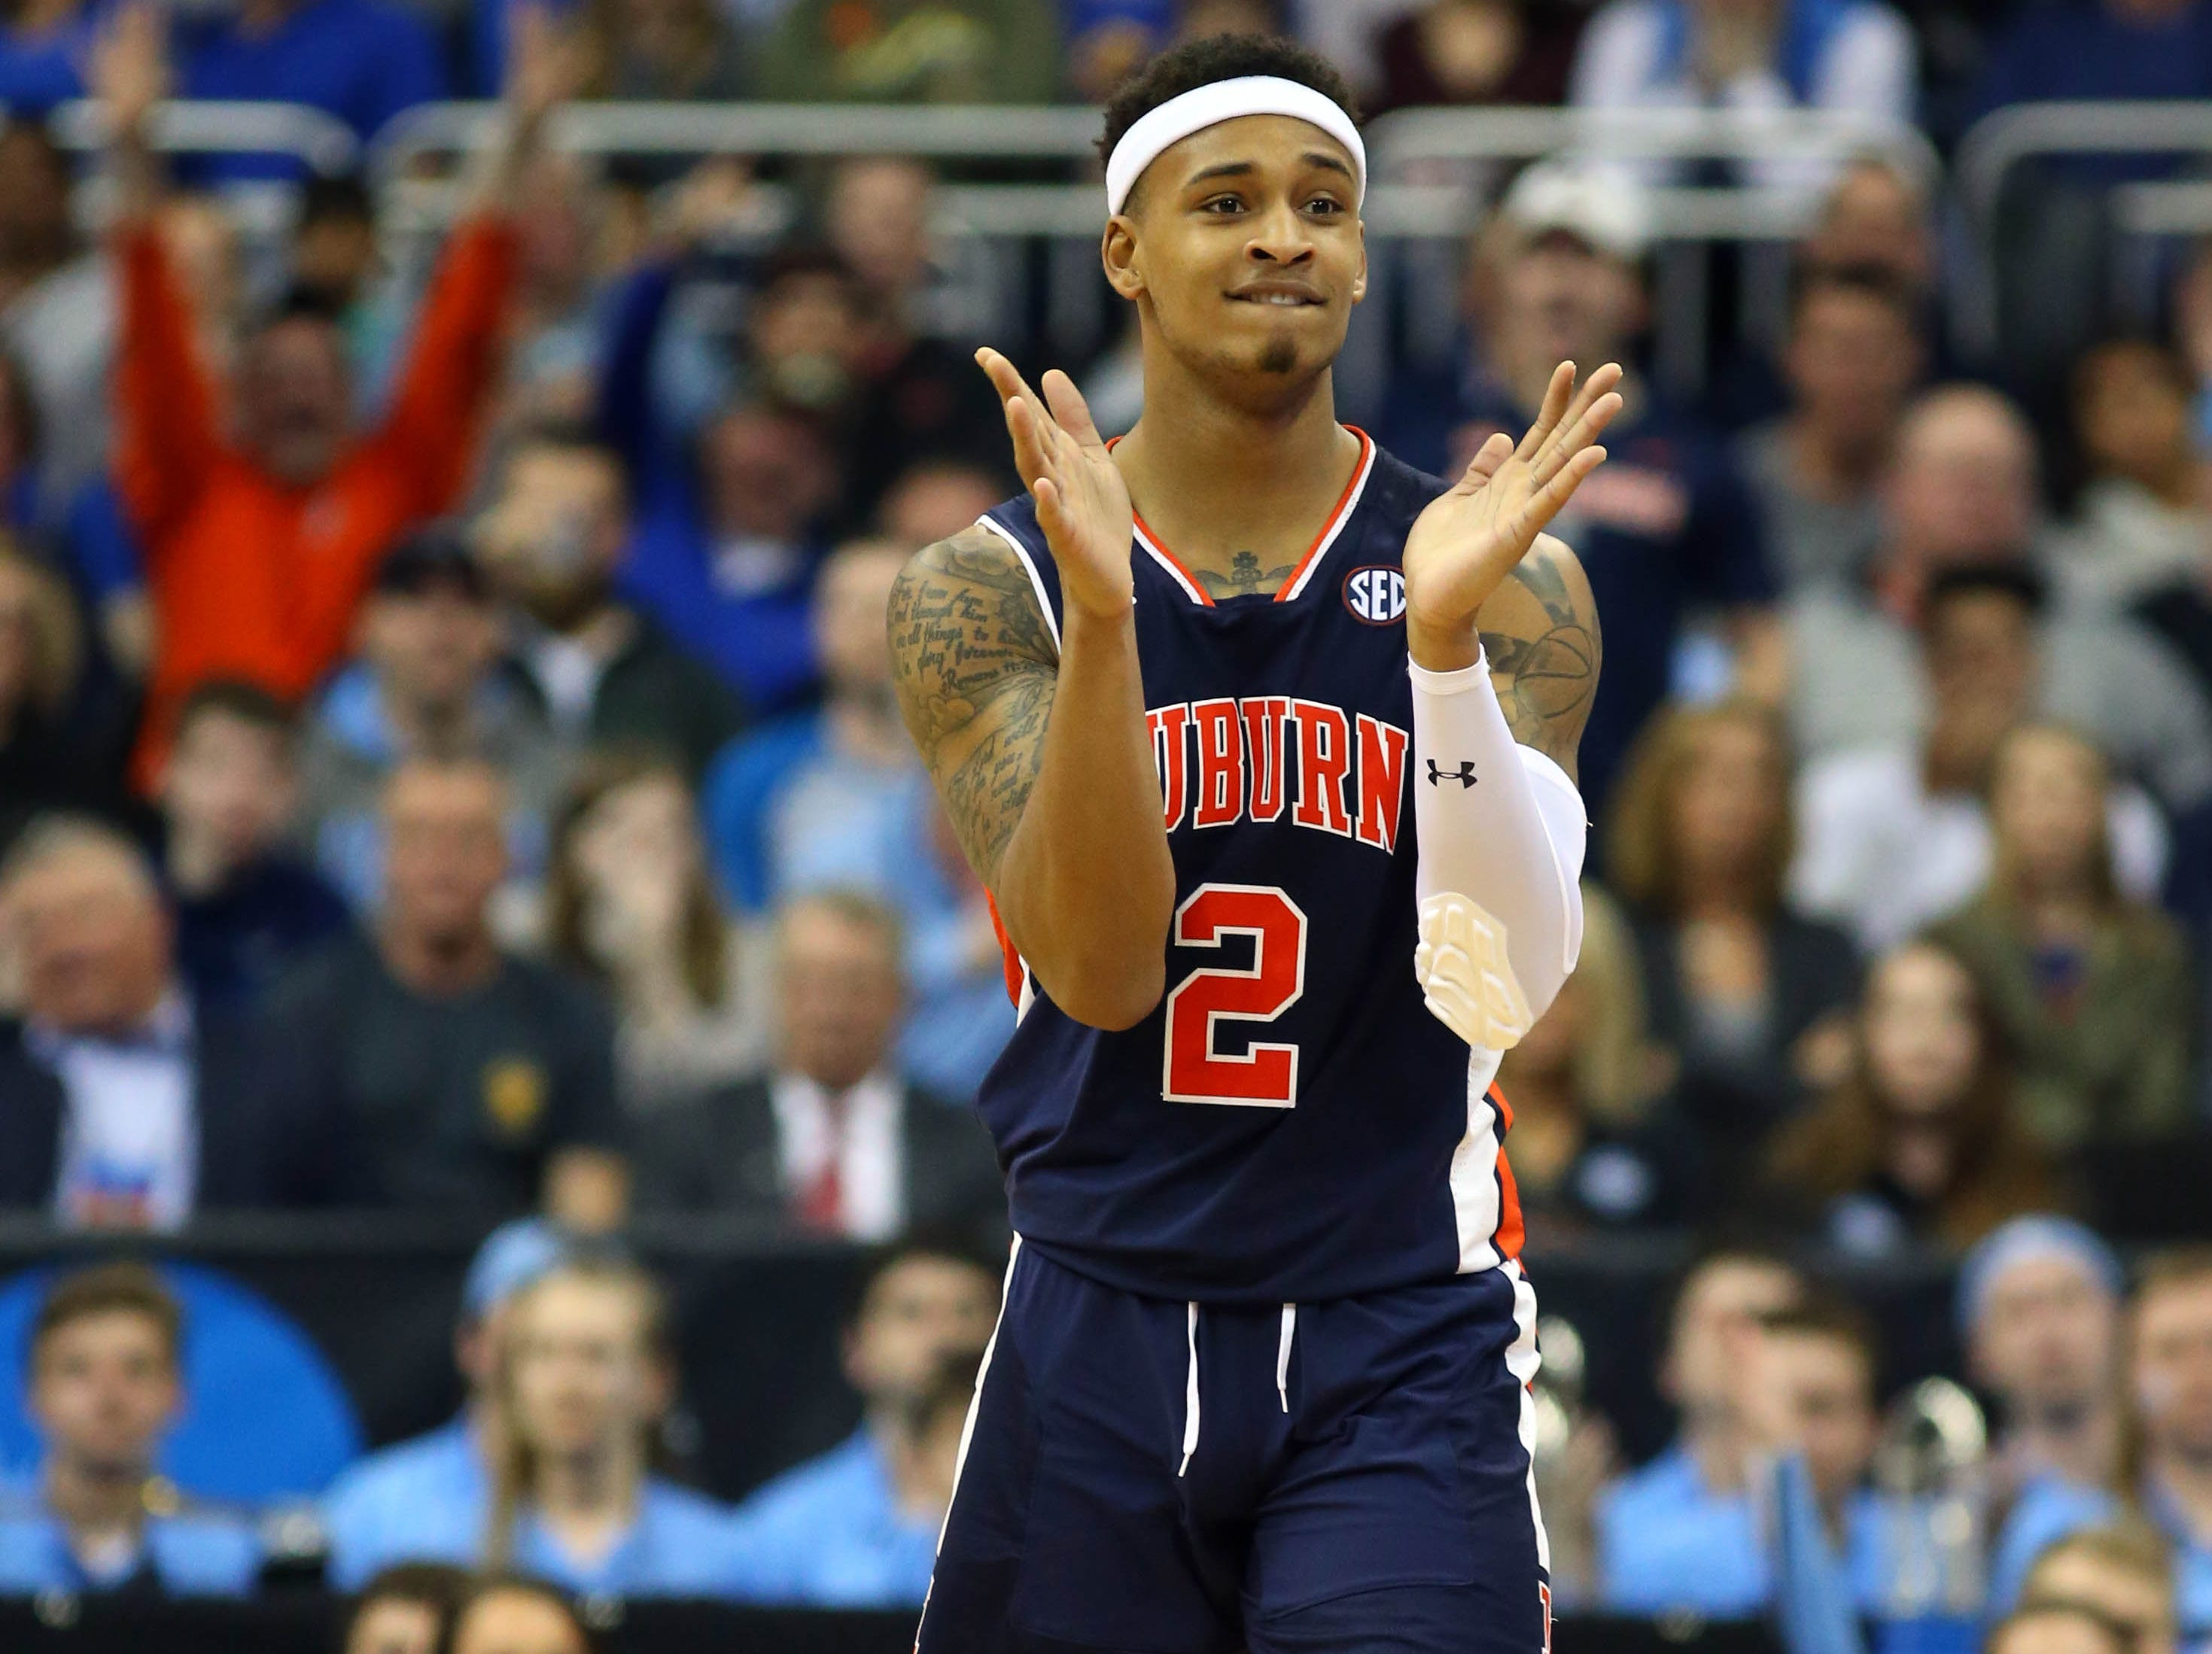 Mar 29, 2019; Kansas City, MO, United States; Auburn Tigers guard Bryce Brown (2) reacts against the North Carolina Tar Heels during the second half in the semifinals of the midwest regional of the 2019 NCAA Tournament at Sprint Center. Mandatory Credit: Jay Biggerstaff-USA TODAY Sports